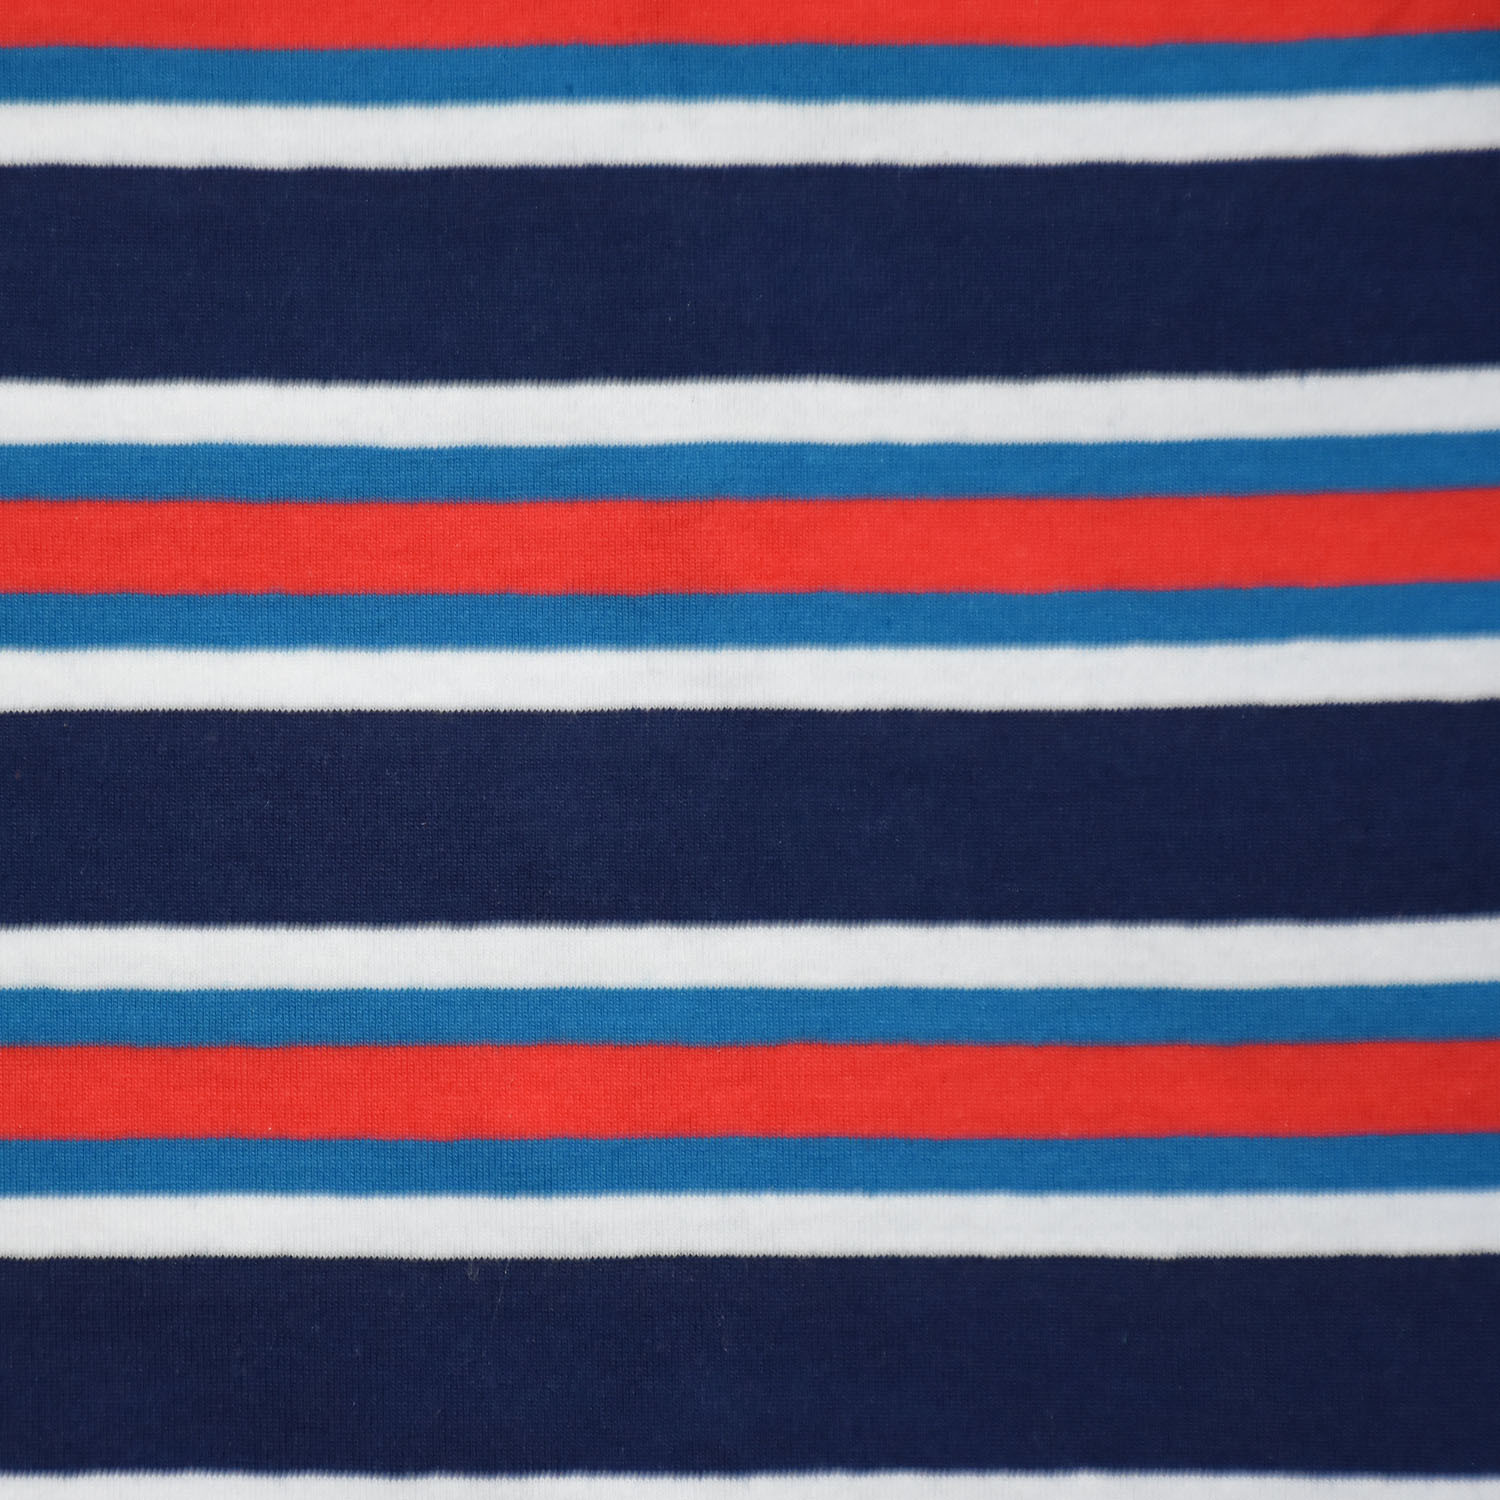 210GSM Yarn Dyed Stripe Fabric for T-Shirts